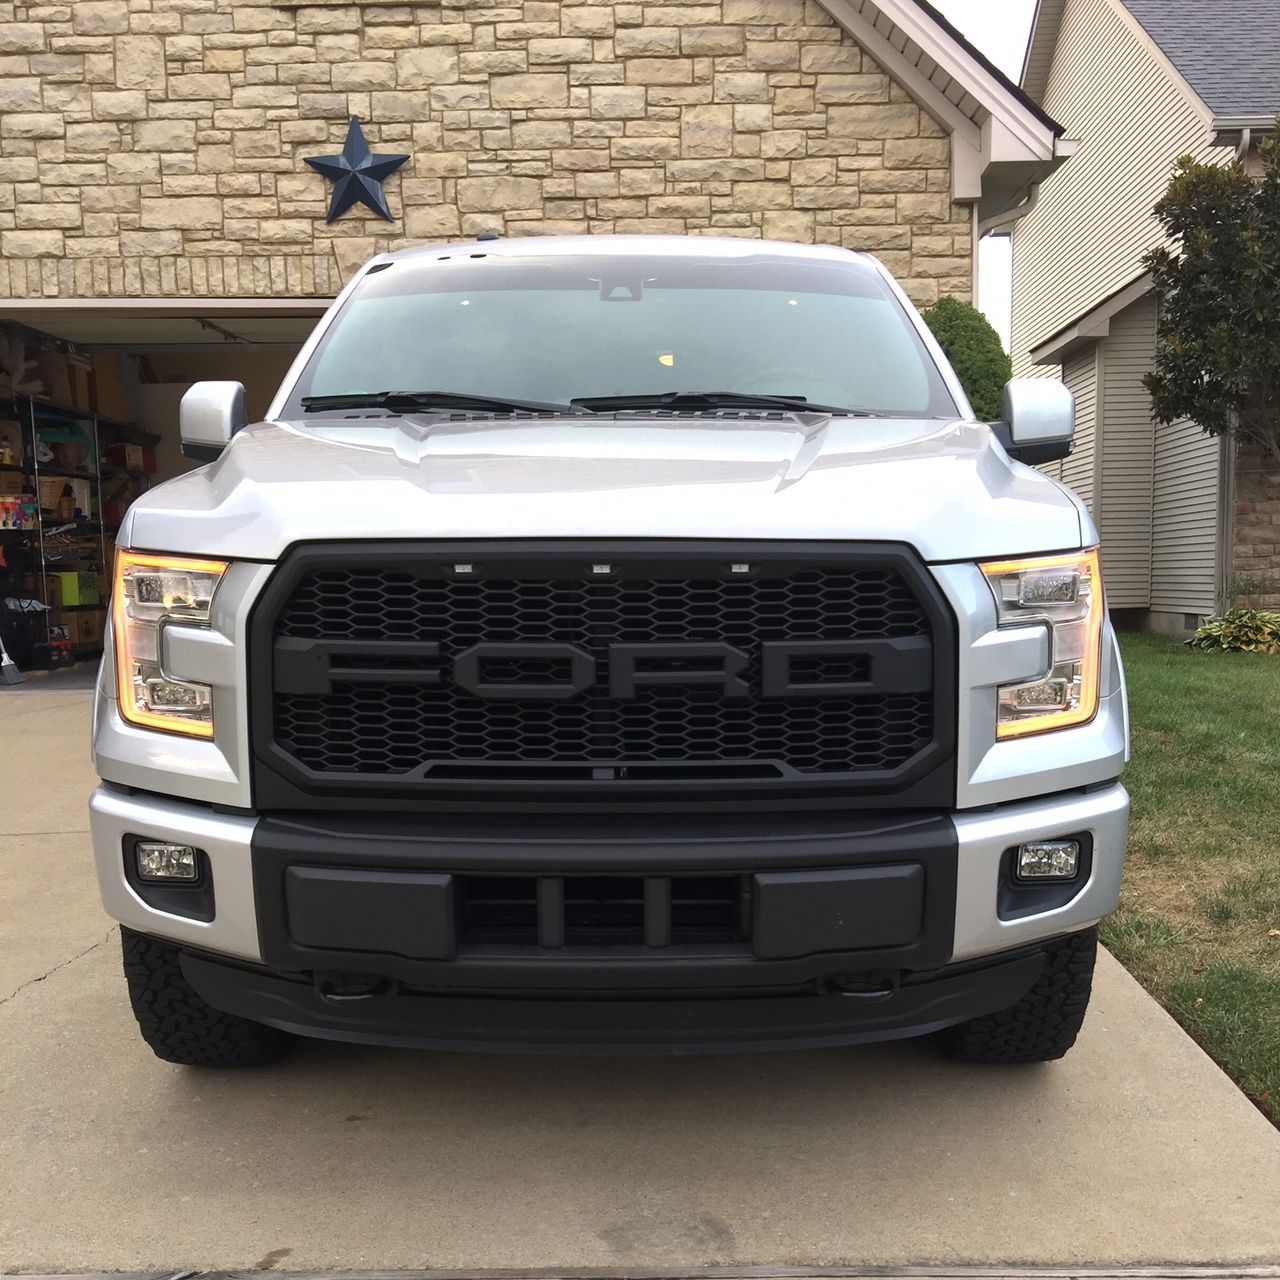 Grill options raptor style grill page 124 ford f150 forum community of ford truck fans